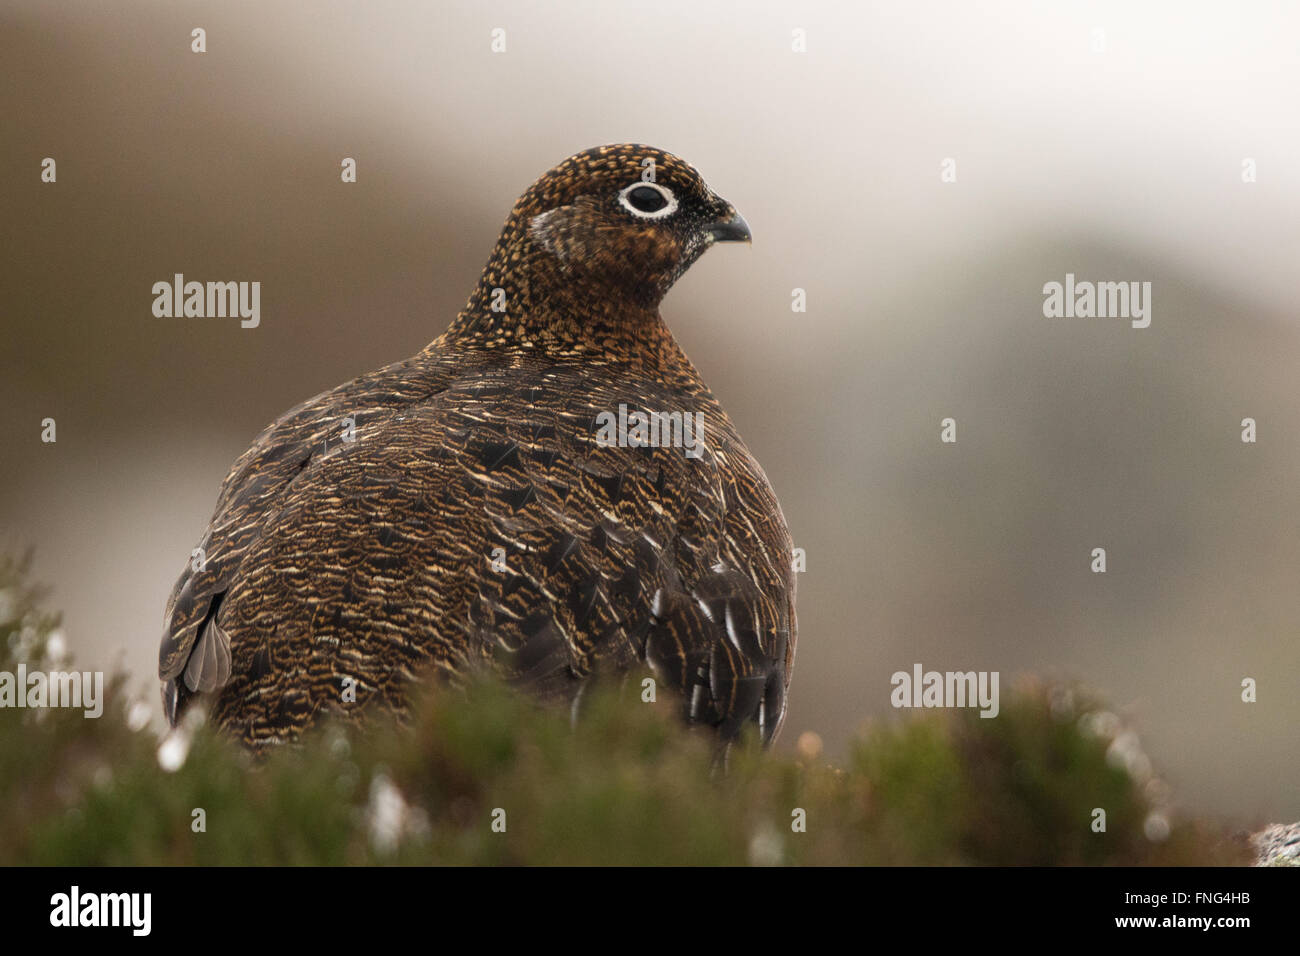 female Red Grouse (Lagopus lagopus scotica) sitting in heather - Stock Image